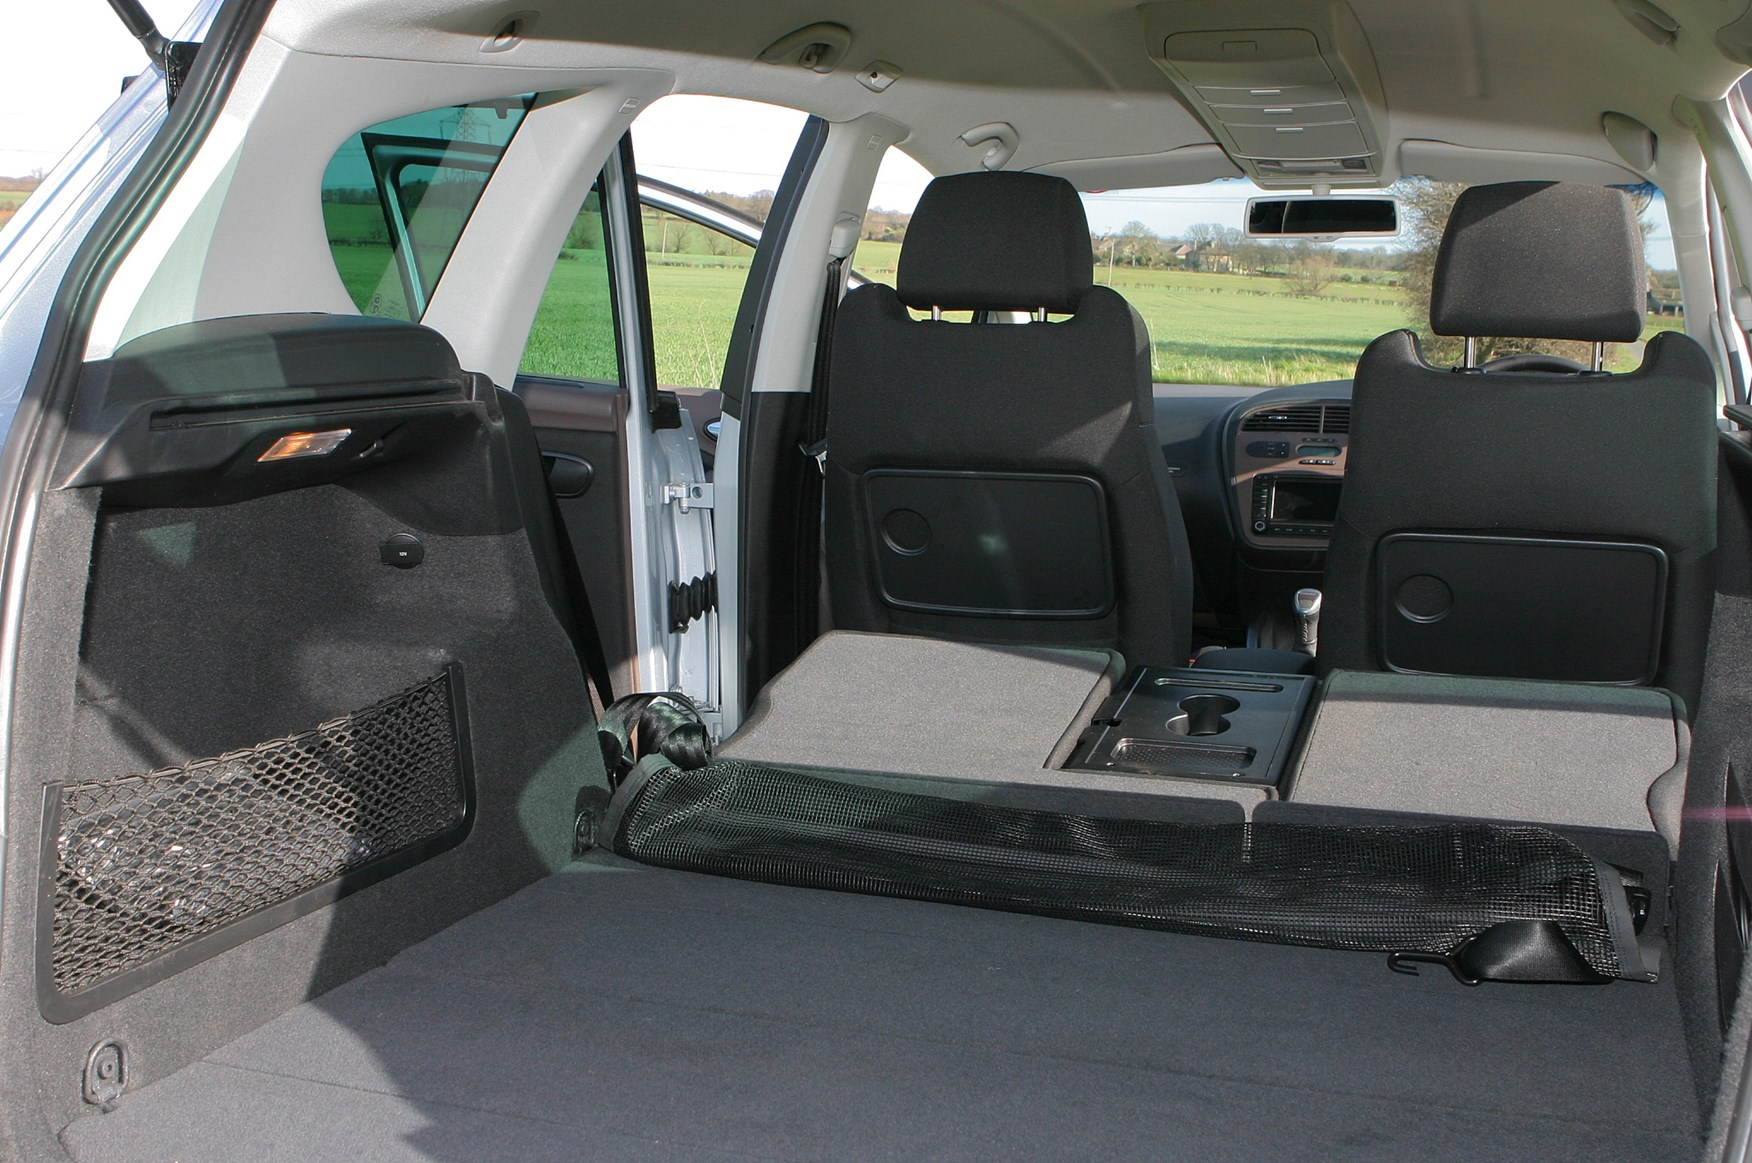 SEAT Altea Freetrack 4 (2007 - 2009) Features, Equipment and ...